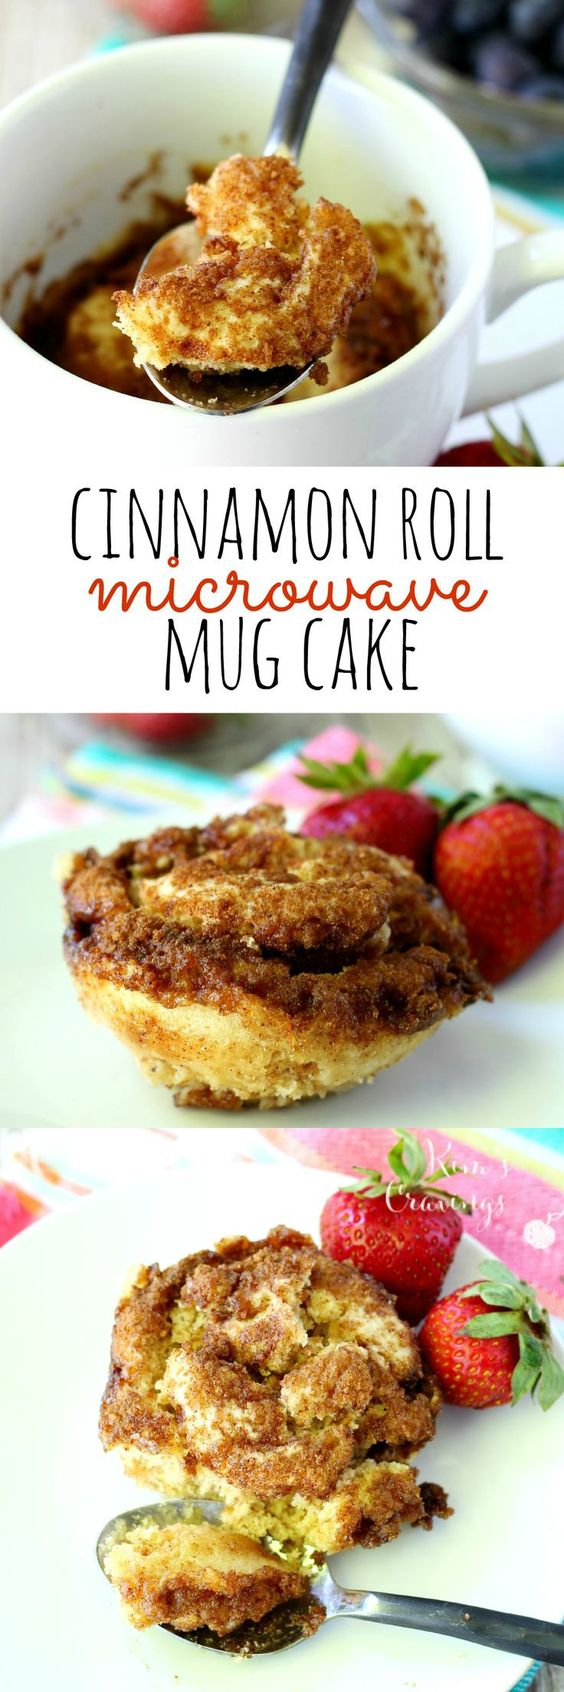 This easy cinnamon roll microwave mug cake is the perfect treat when you're craving a little something sweet. In just over a minute, you can be indulging in a scrumptious moist single-sized cinnamon roll flavored cake.